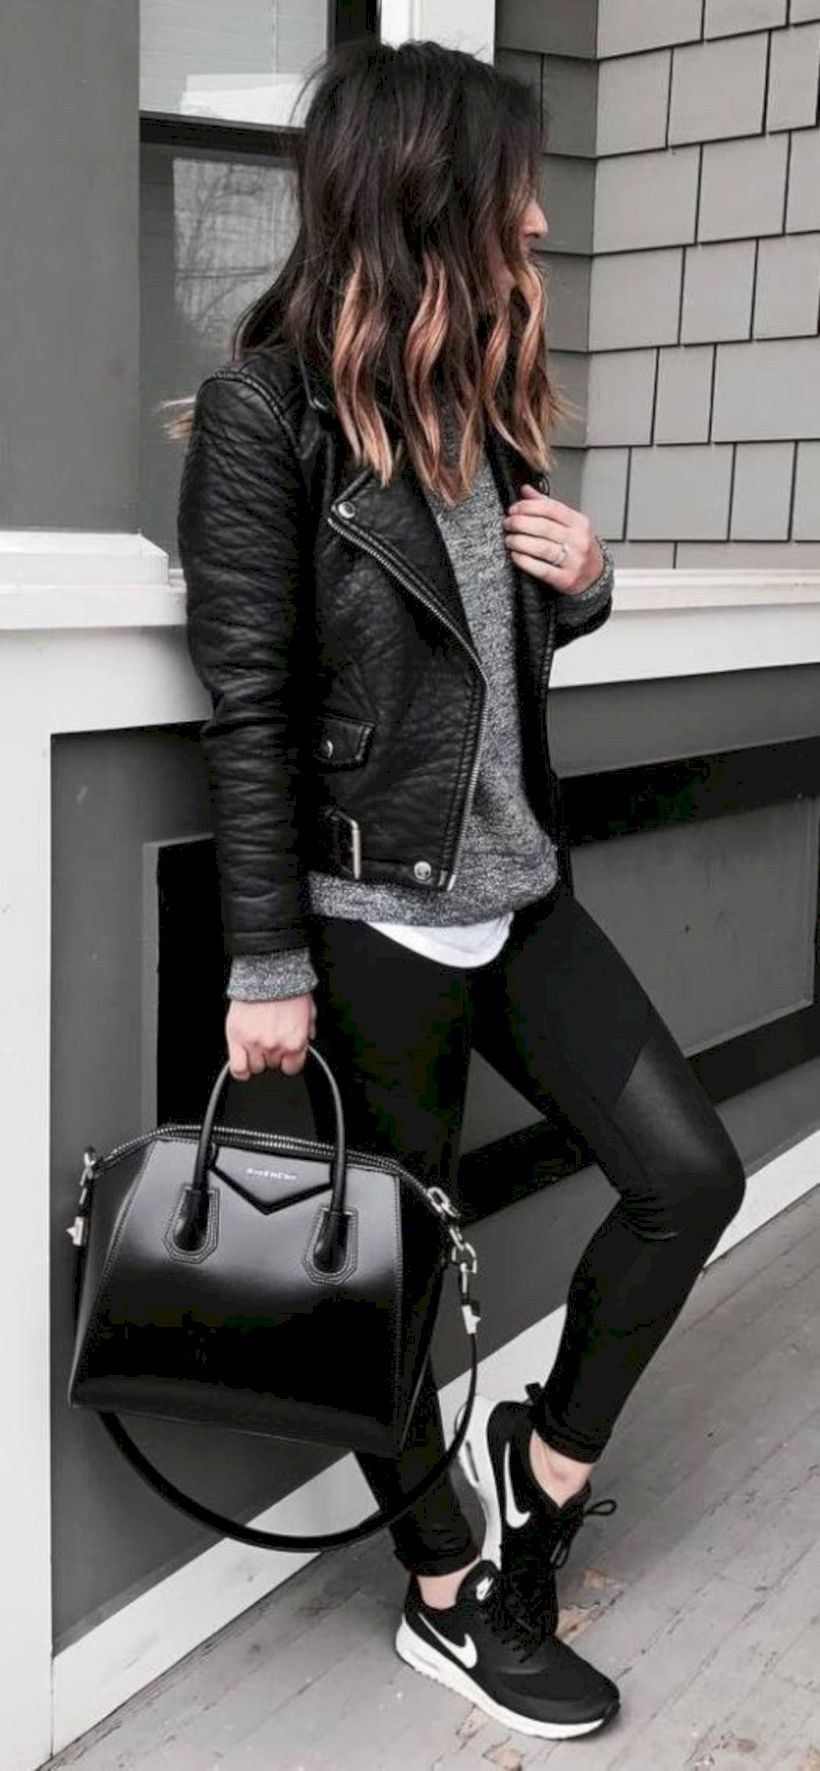 51 Stunning Casual Fall Outfit With Sneakers Outfit Women Outfit Women Outfit